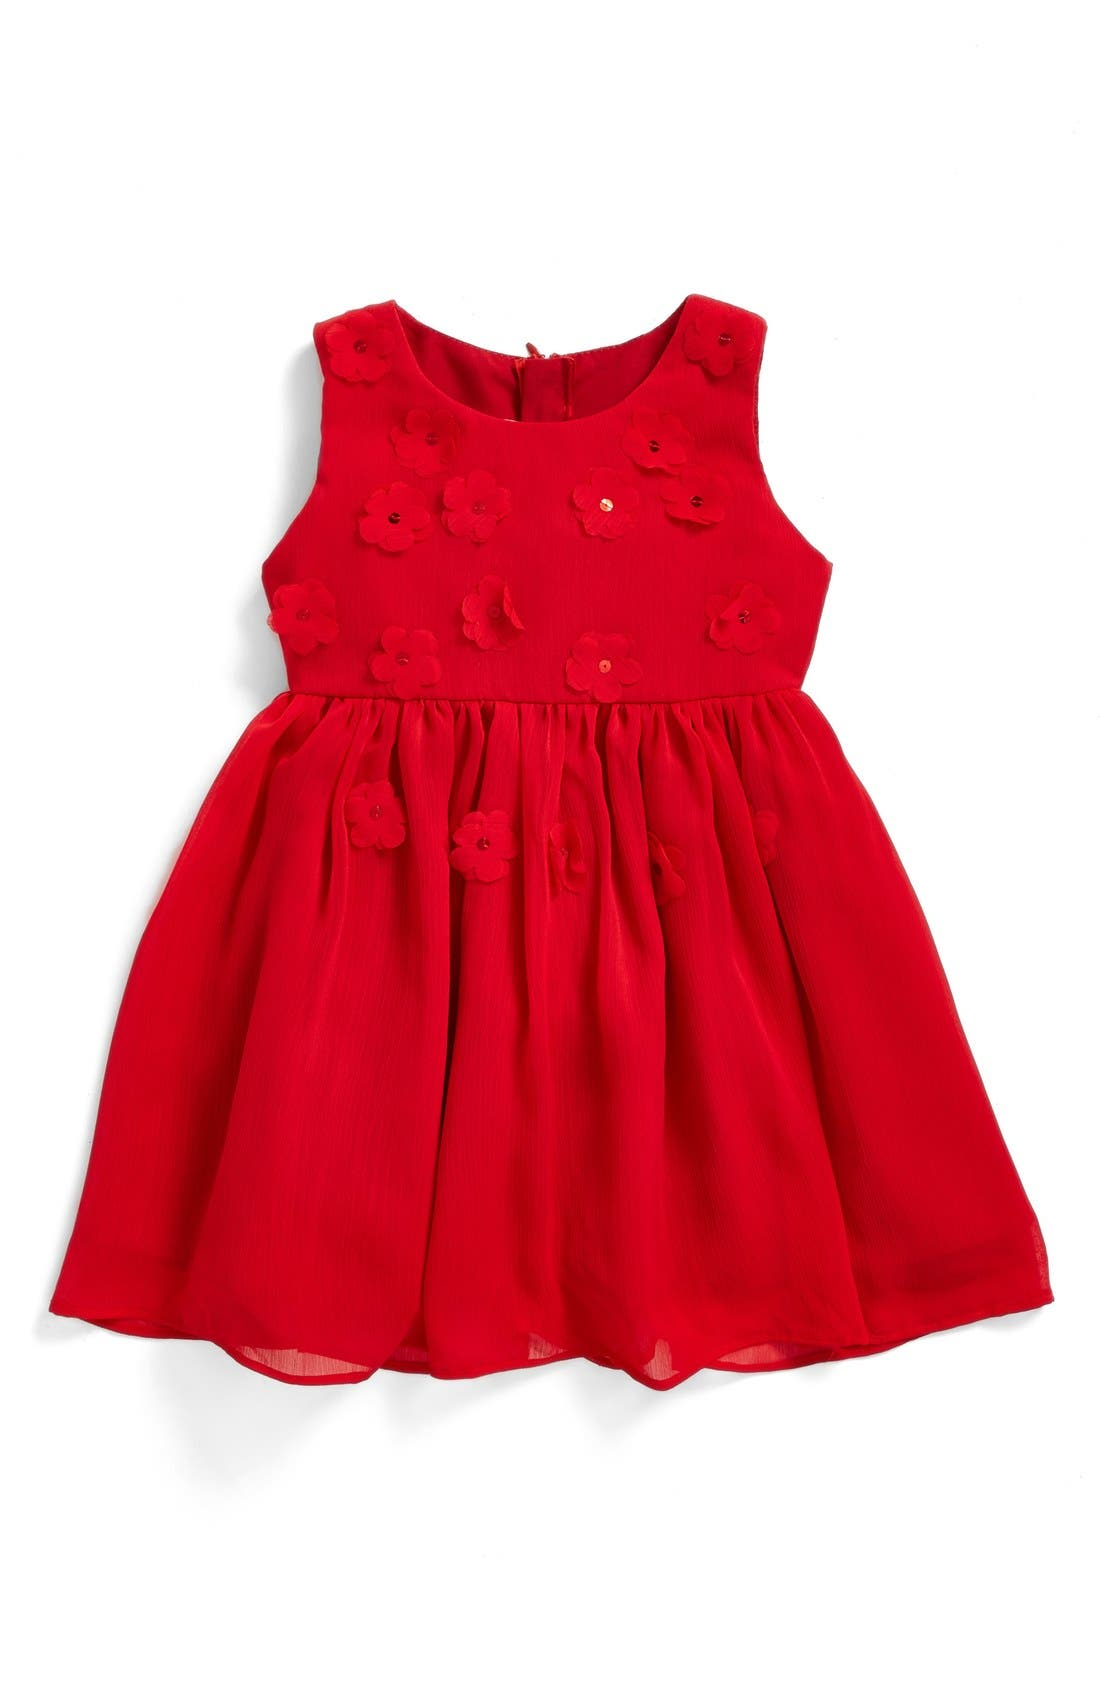 Alternate Image 1 Selected - Popatu Floral Fit & Flare Dress (Baby Girls)